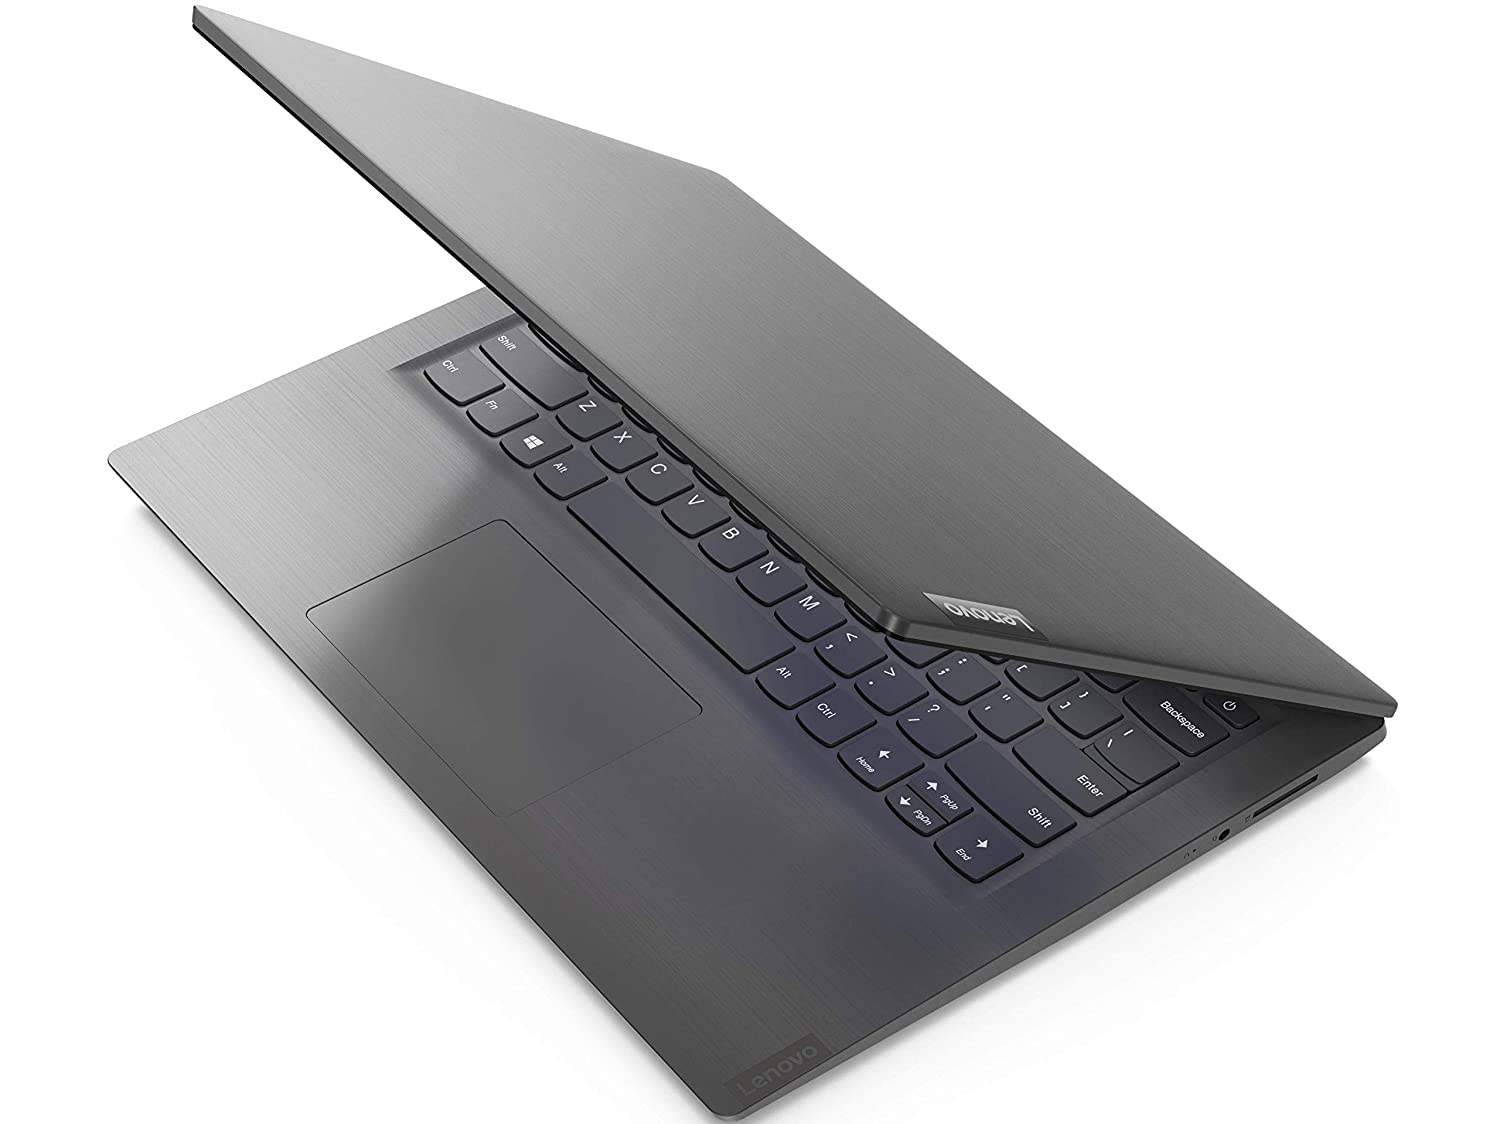 Lenovo V14 Intel Core I3 8th Gen 14- HD Thin And Light Laptop (4GB RAM/ 256GB SSD/ DOS/ Grey/ 1.6 Kg) 81YA002VIH [B086XSKF9S]